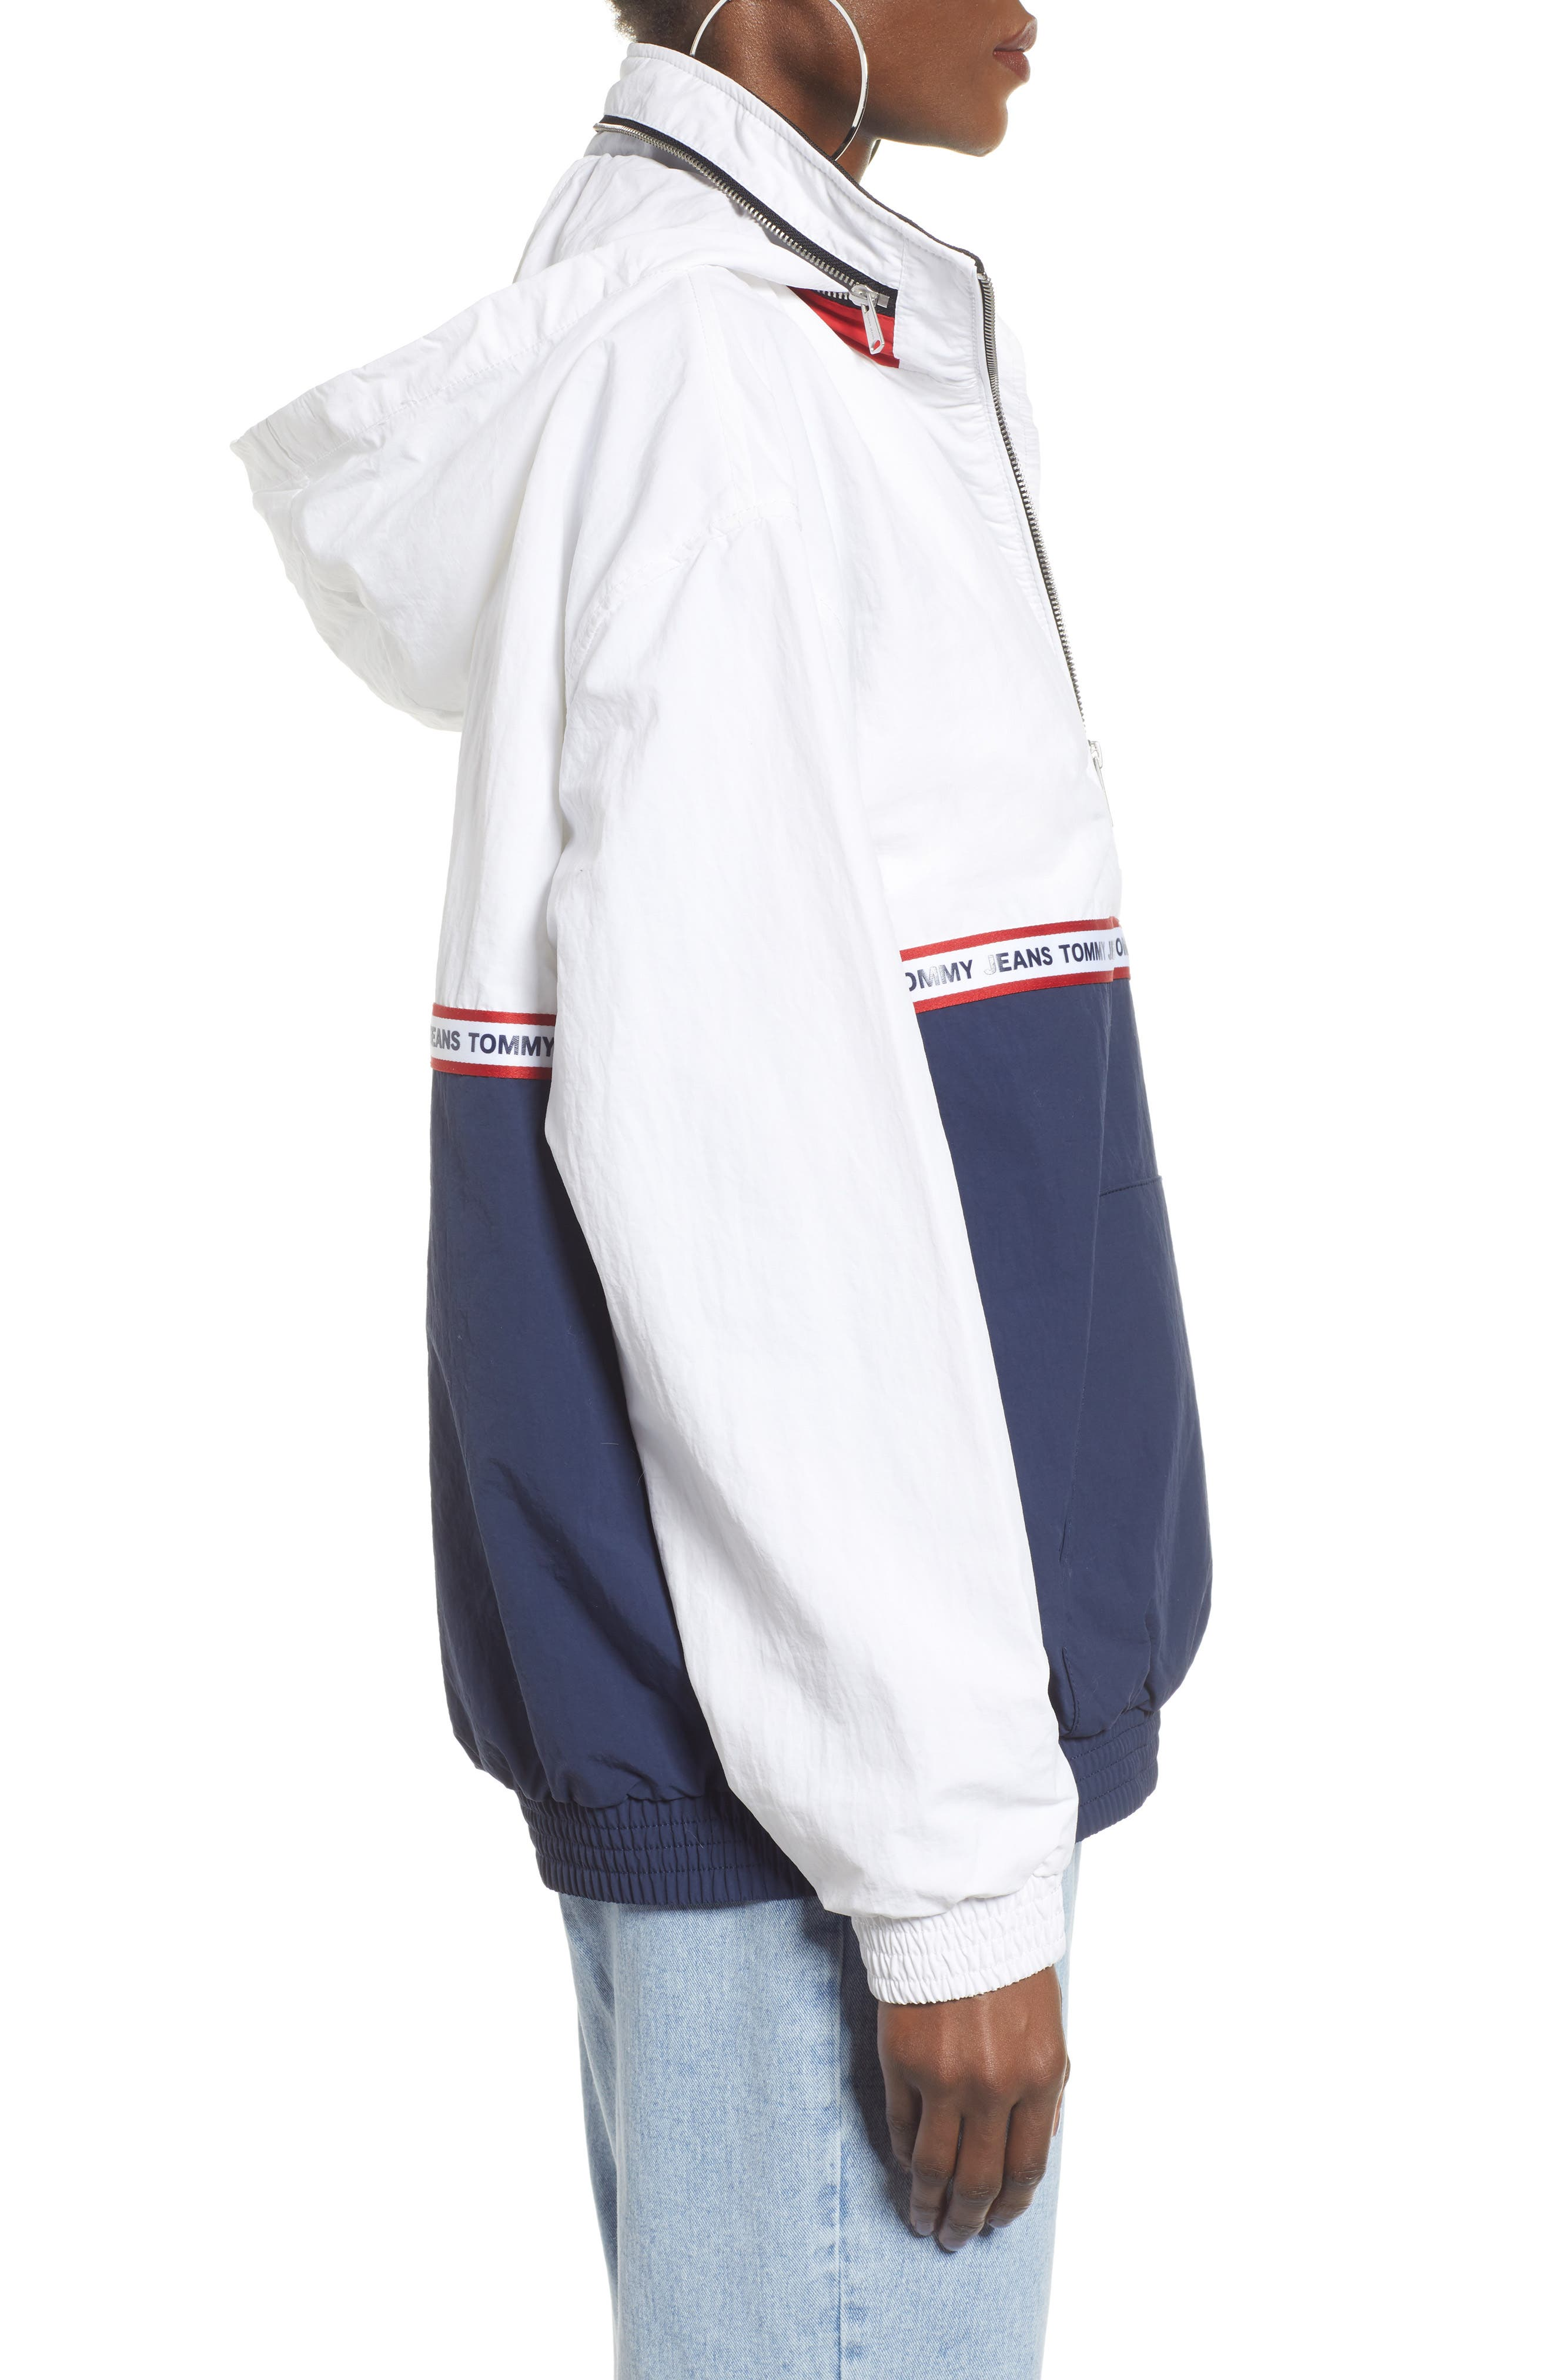 TOMMY JEANS,                             TJW Logo Tape Pullover,                             Alternate thumbnail 3, color,                             400